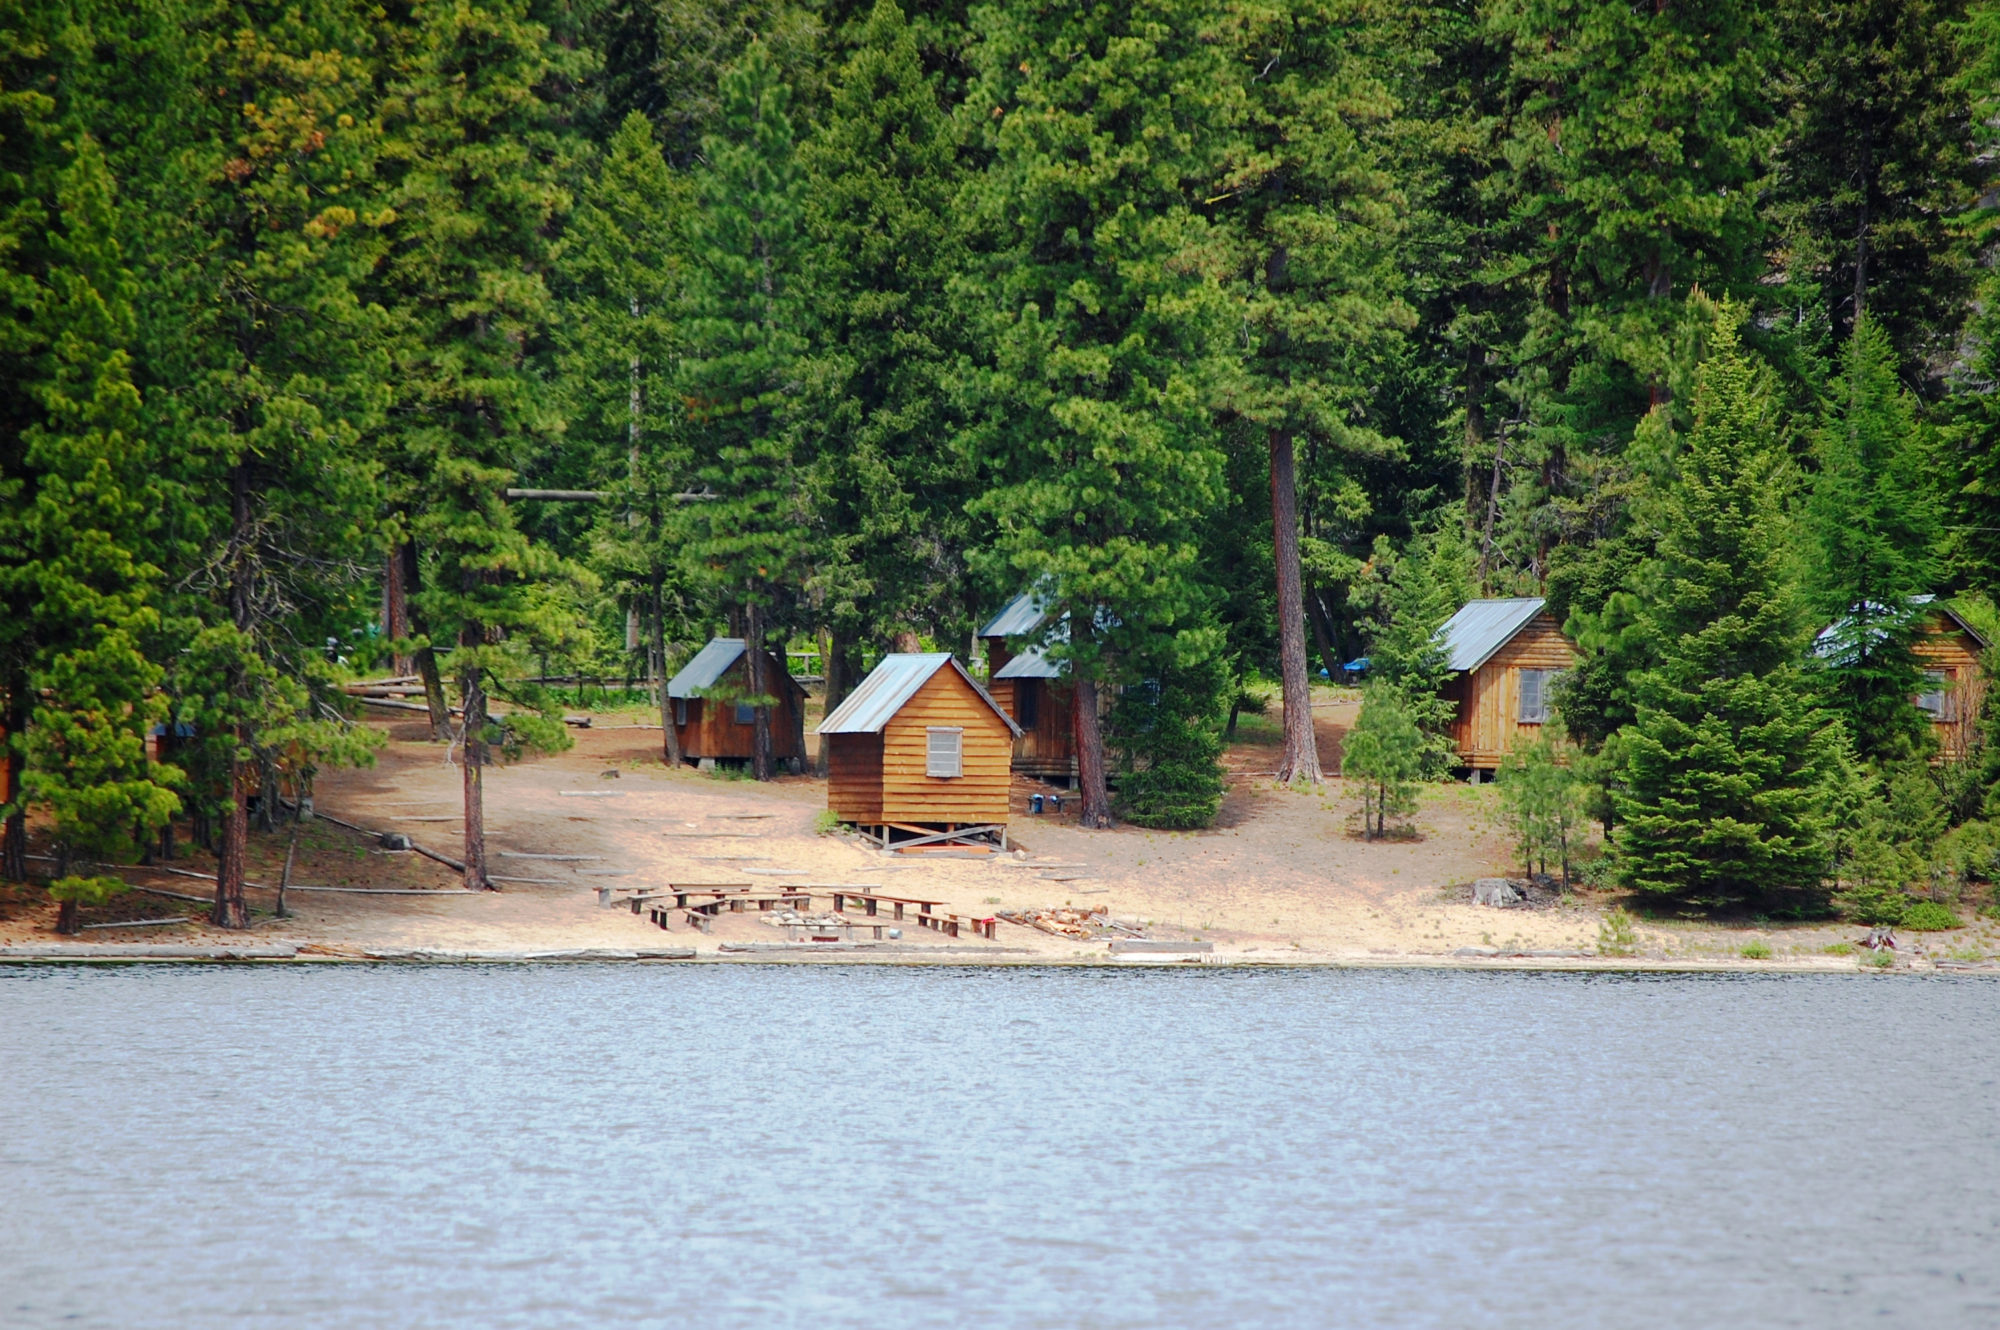 Campground next to lake.